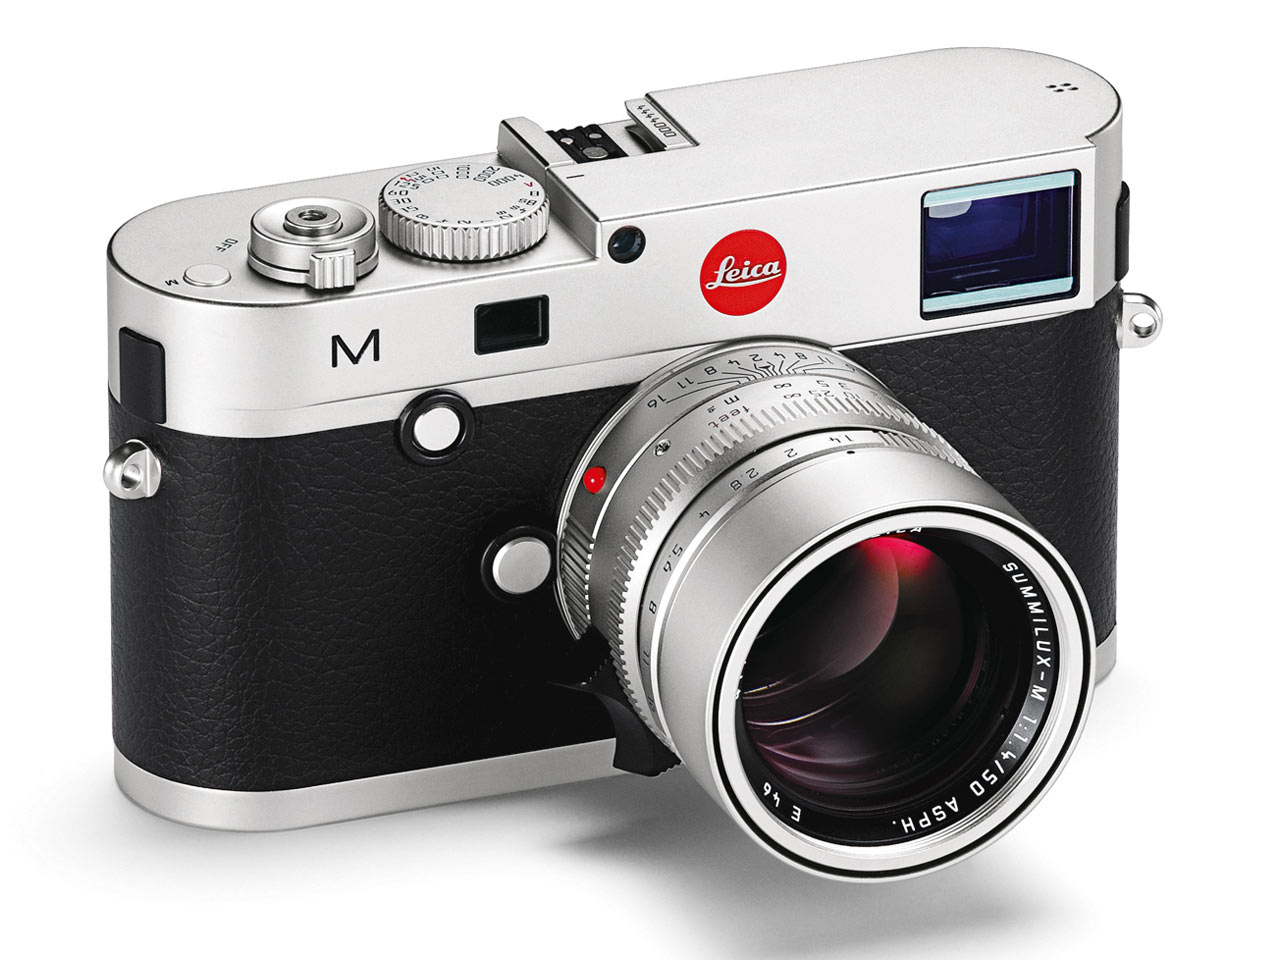 The all new Leica M